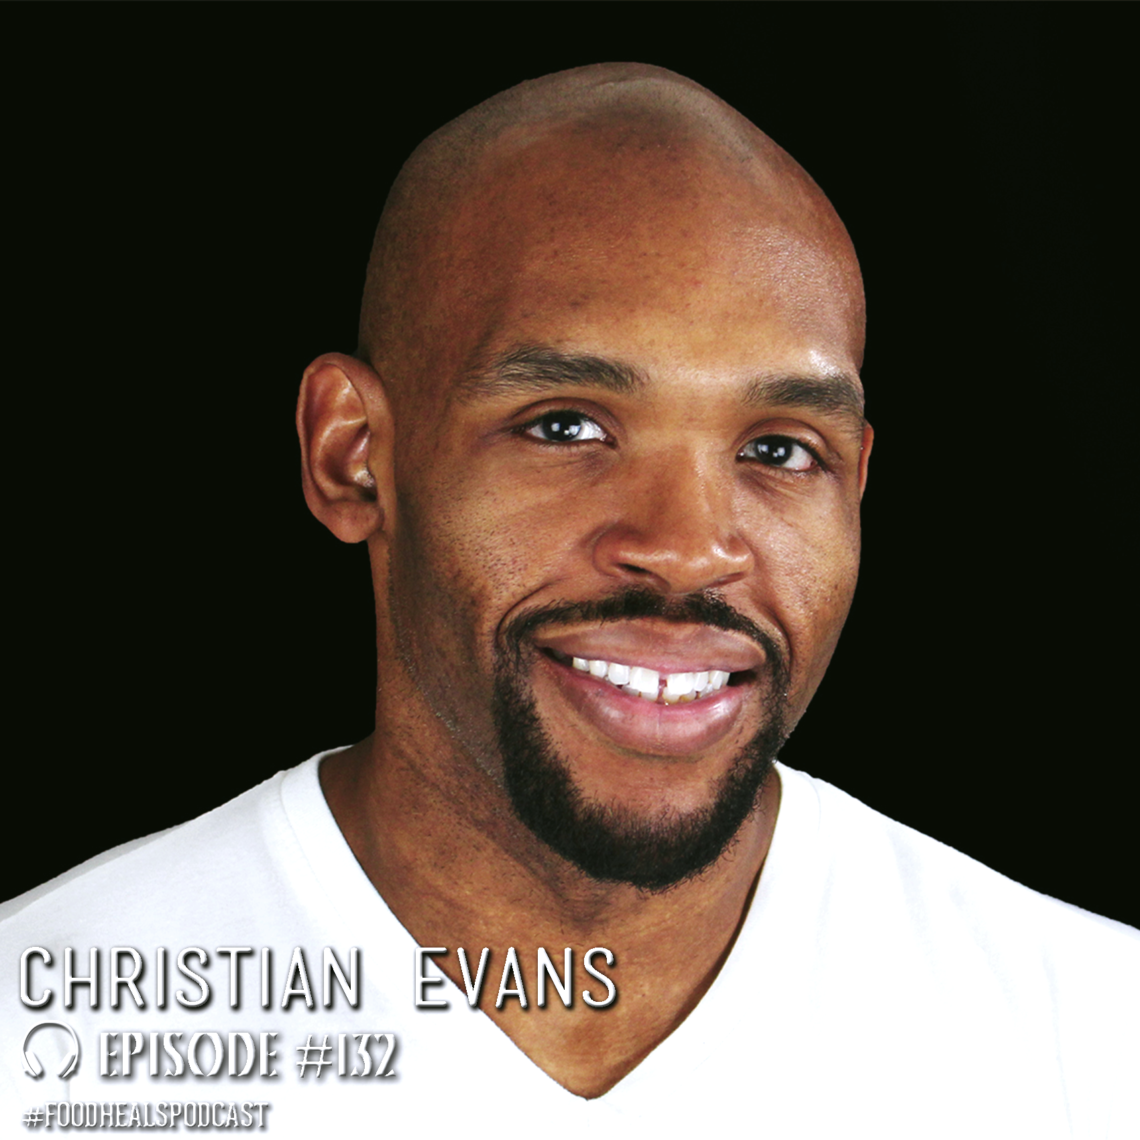 Christian Evans, christiansweightsuccess.net